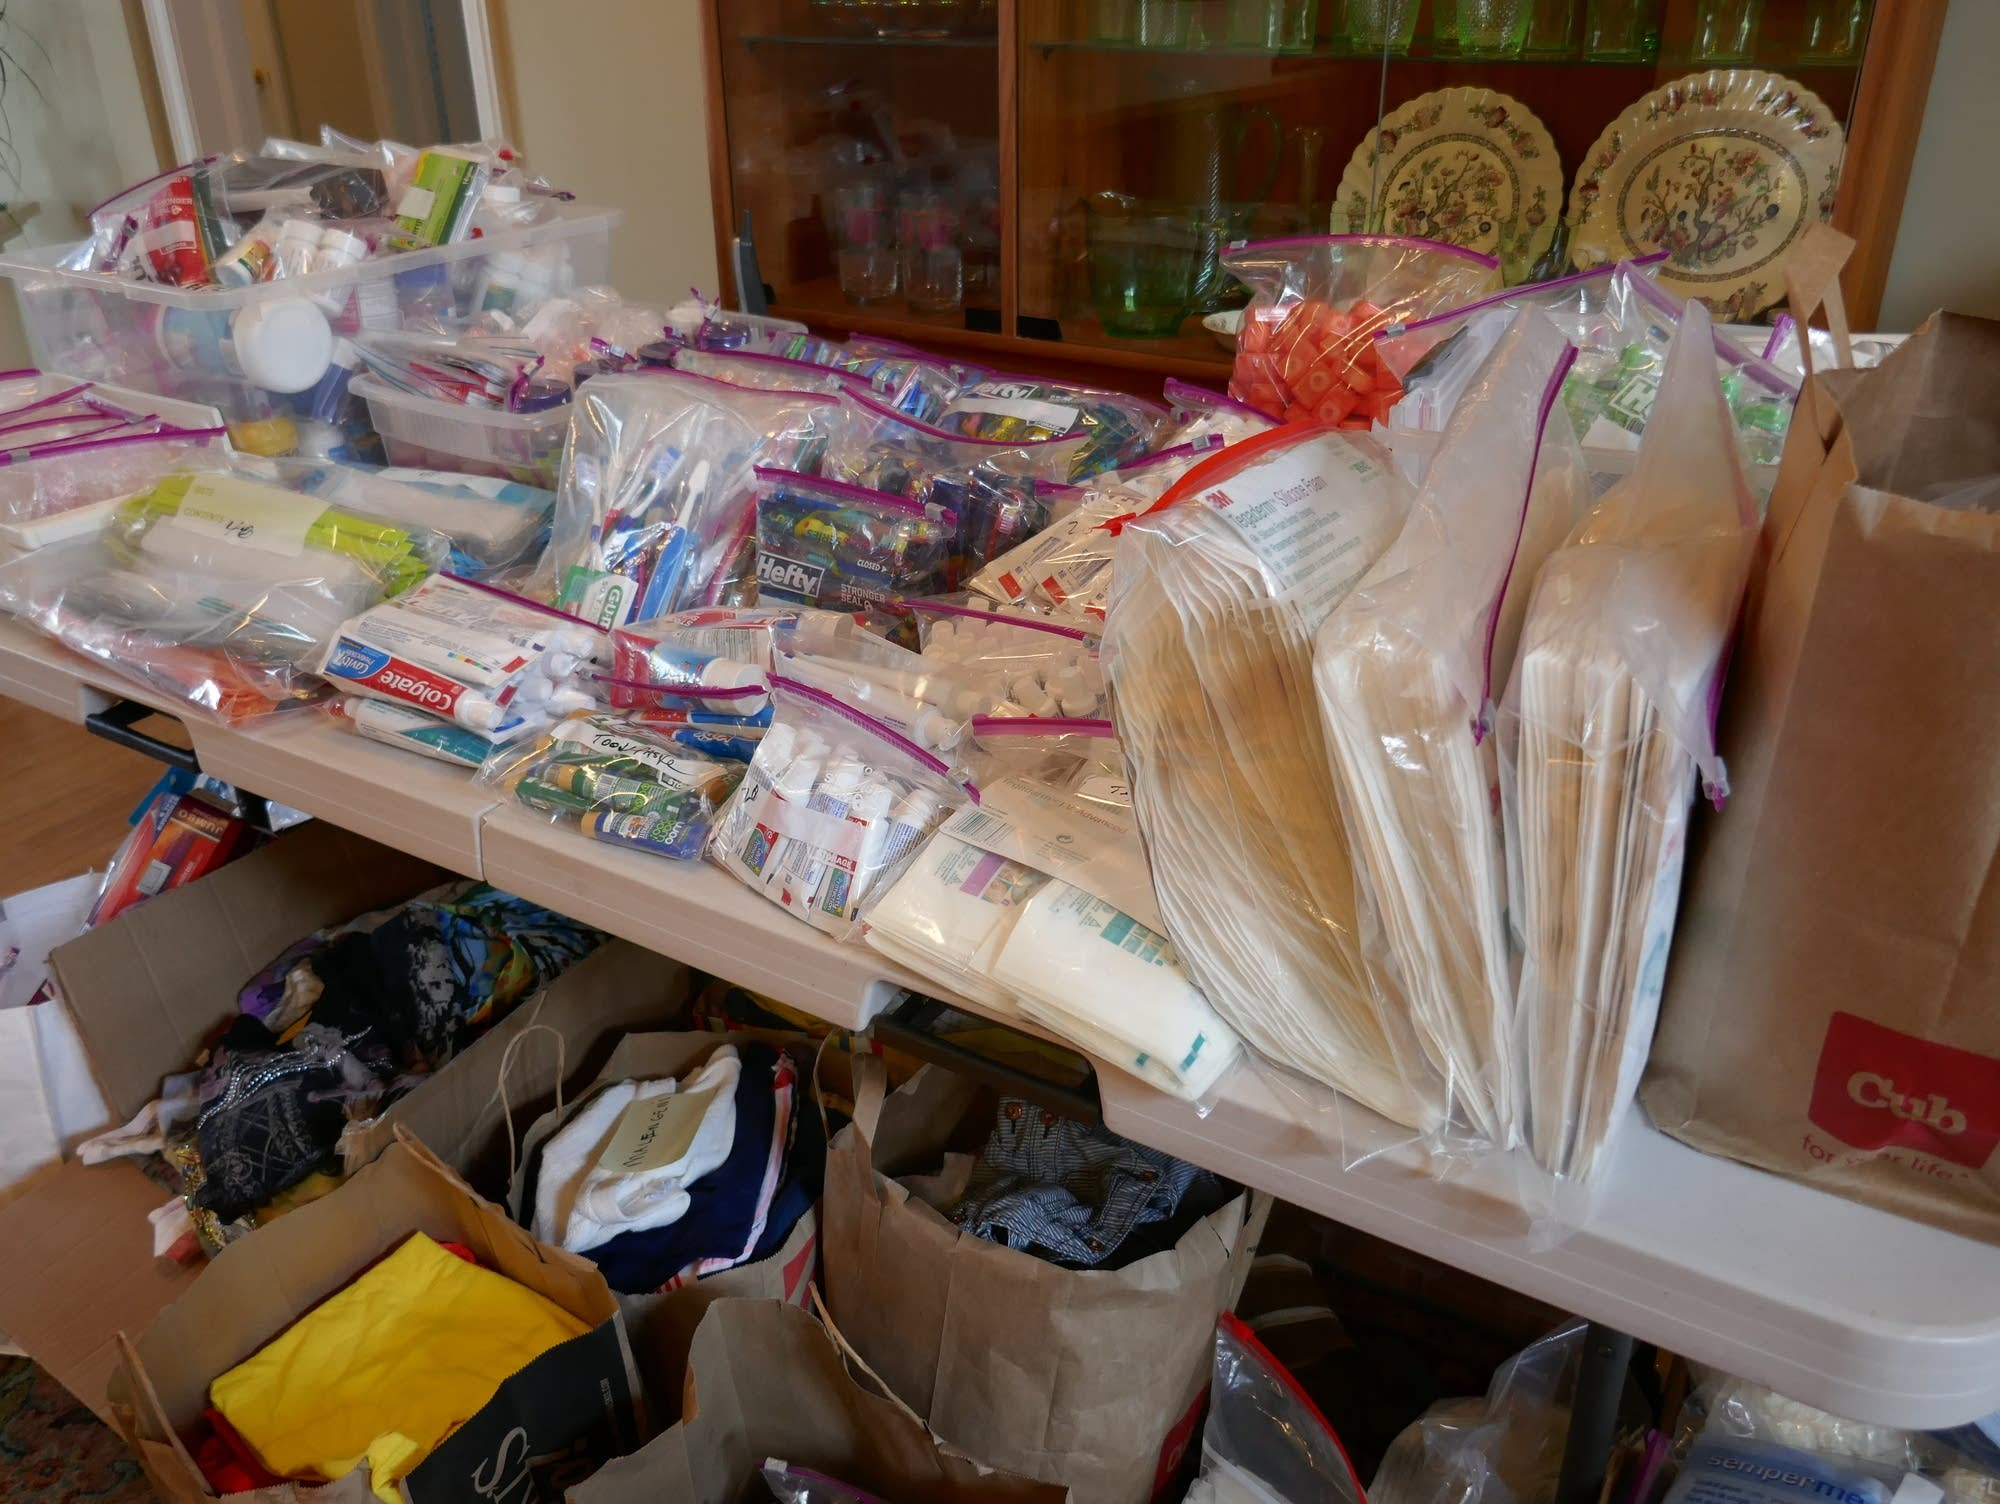 Supplies and donations gathered by Arm in Arm in Africa